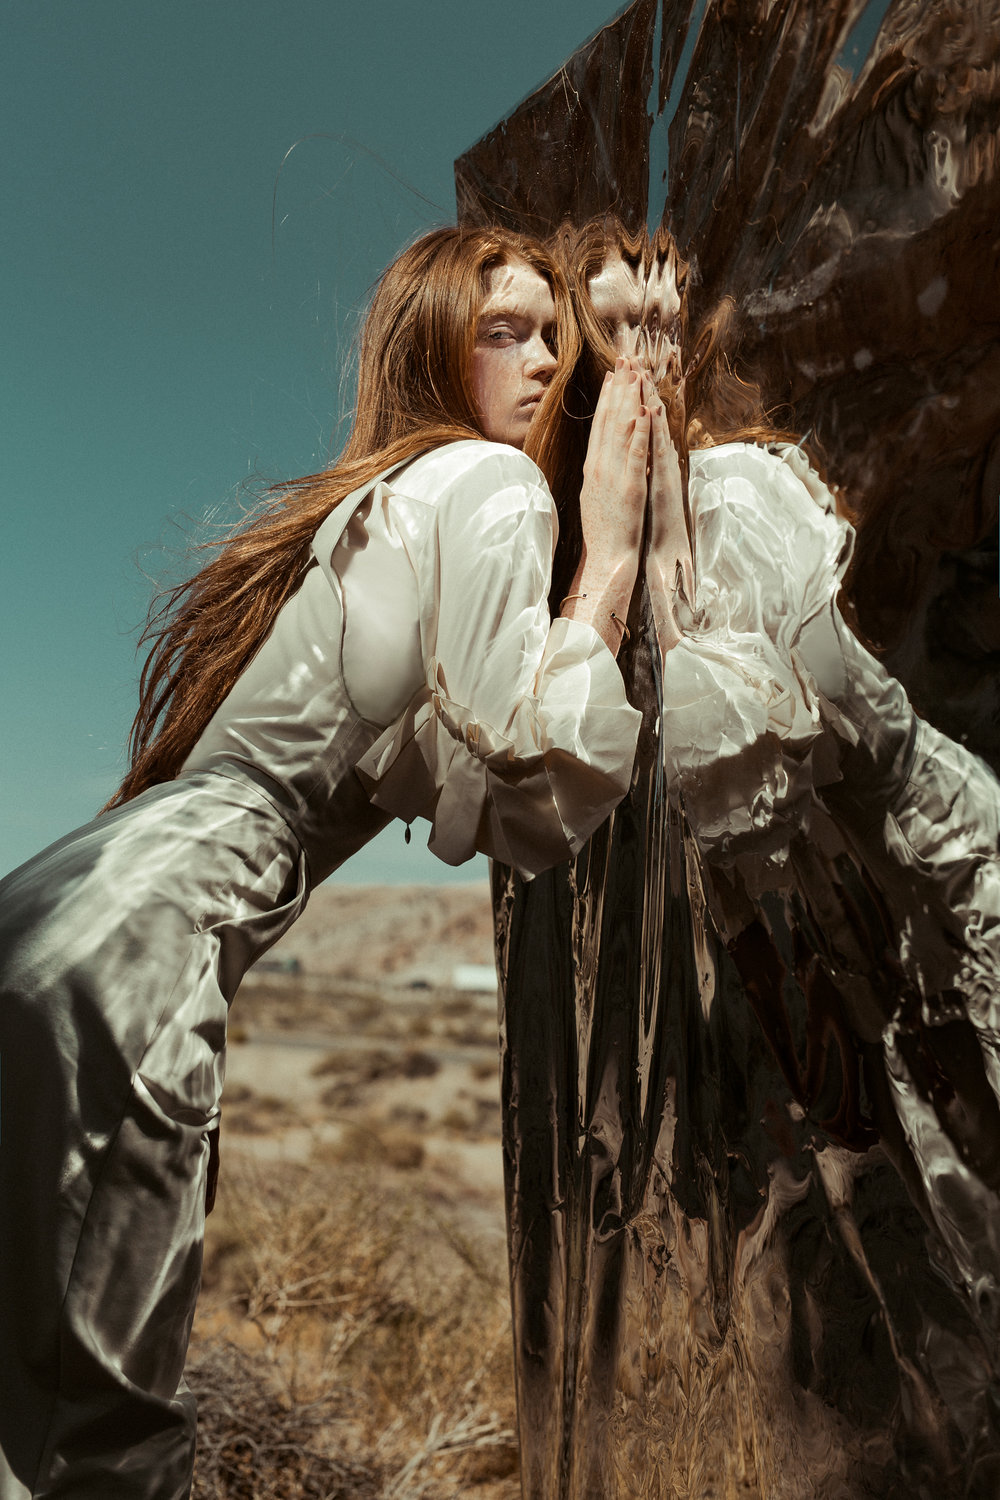 Styled by Brigid, 'Age of Atoms' by Lauren Naylor for Hunger Magazine.